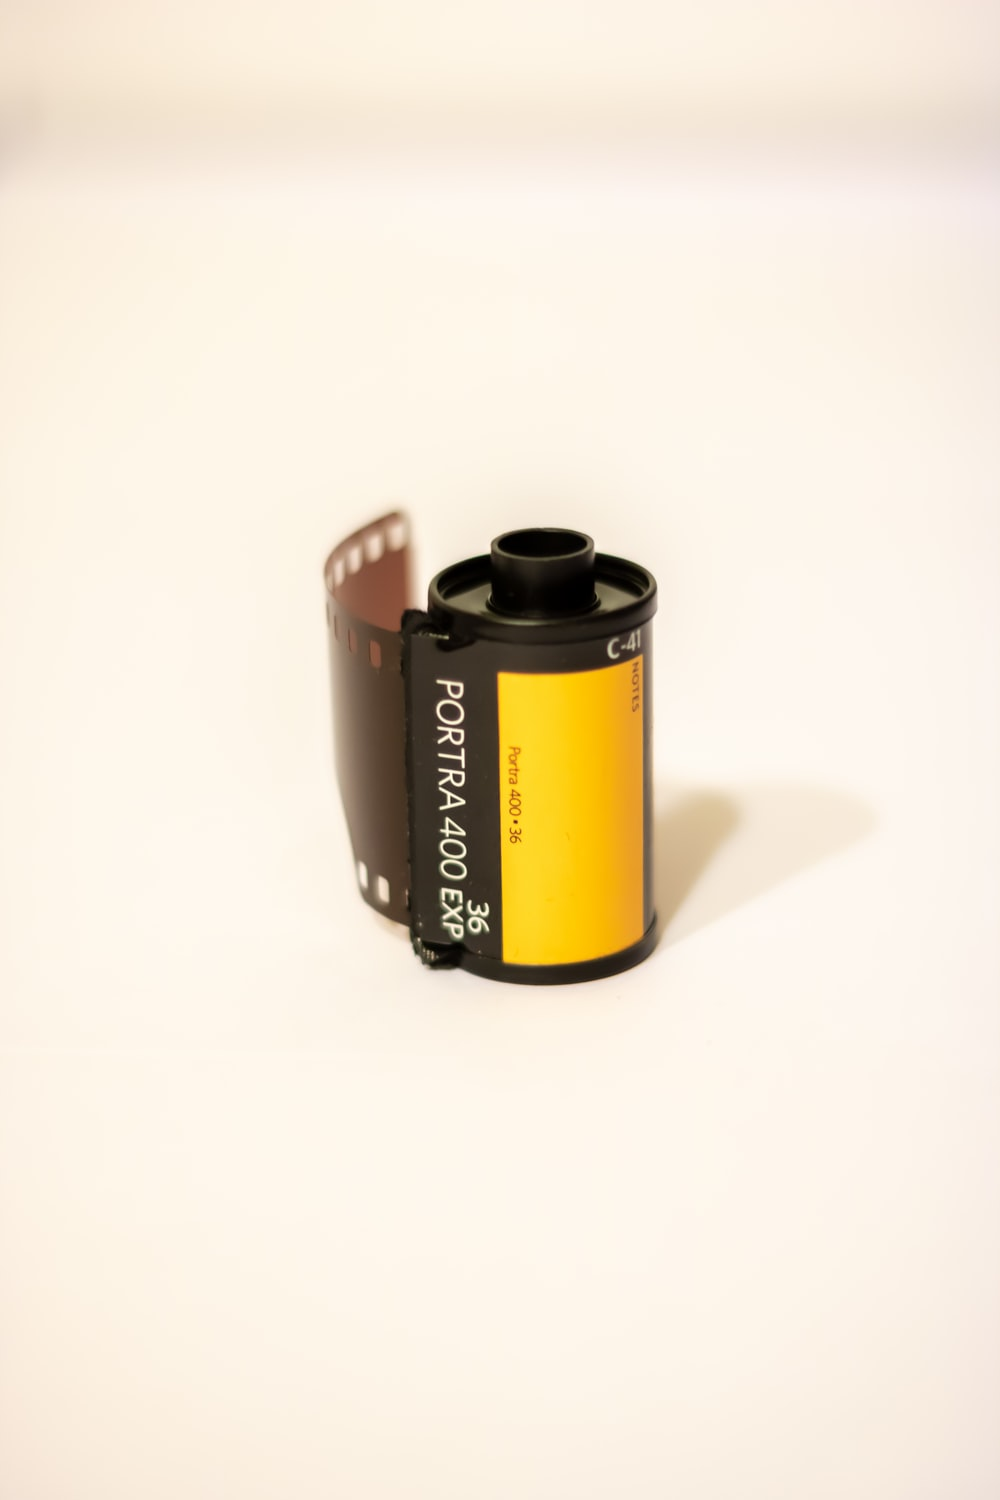 black and yellow labeled can